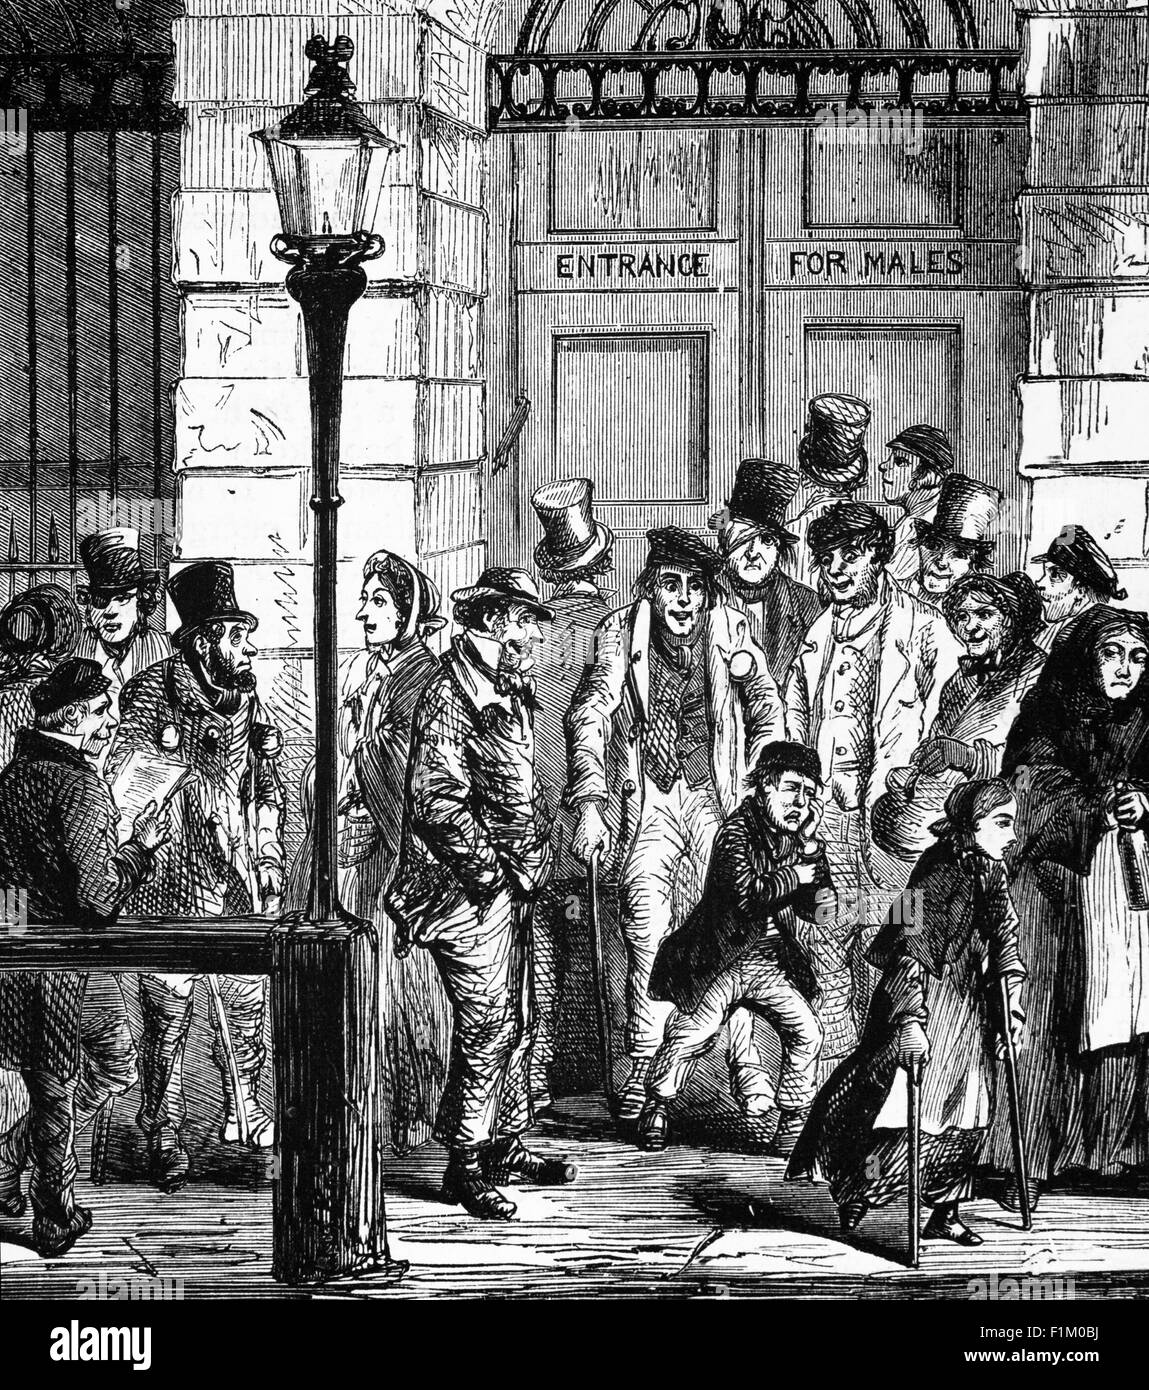 Patients Waiting At The Door Of A HospitalIn 19th Century England